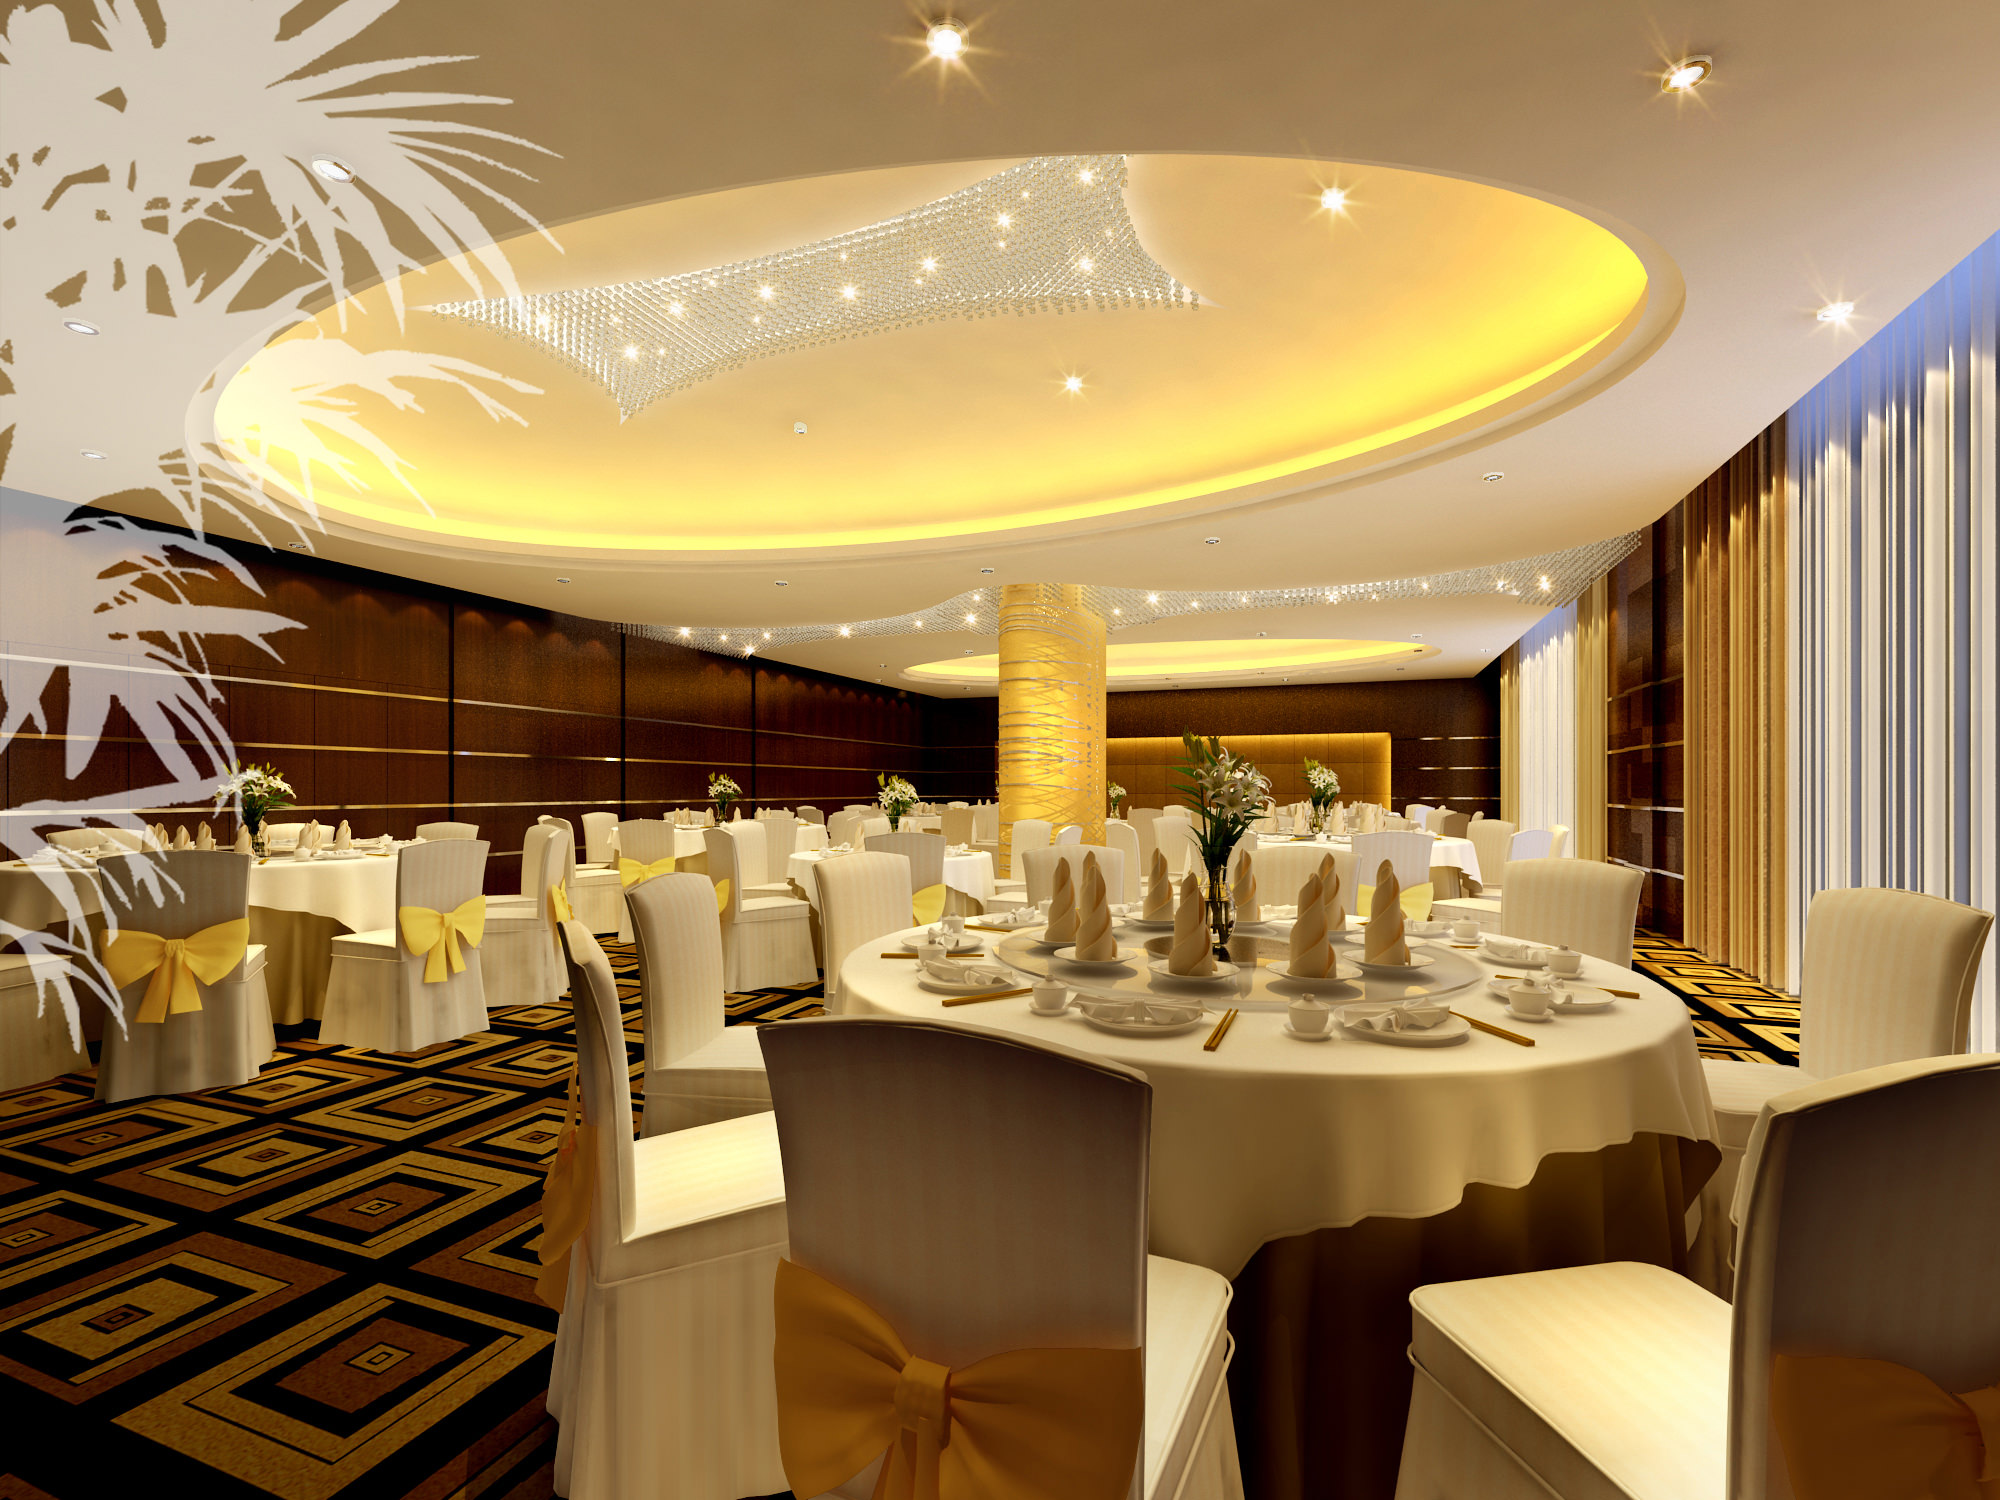 Banquet Hall With Luxury Interior 3d Model Max